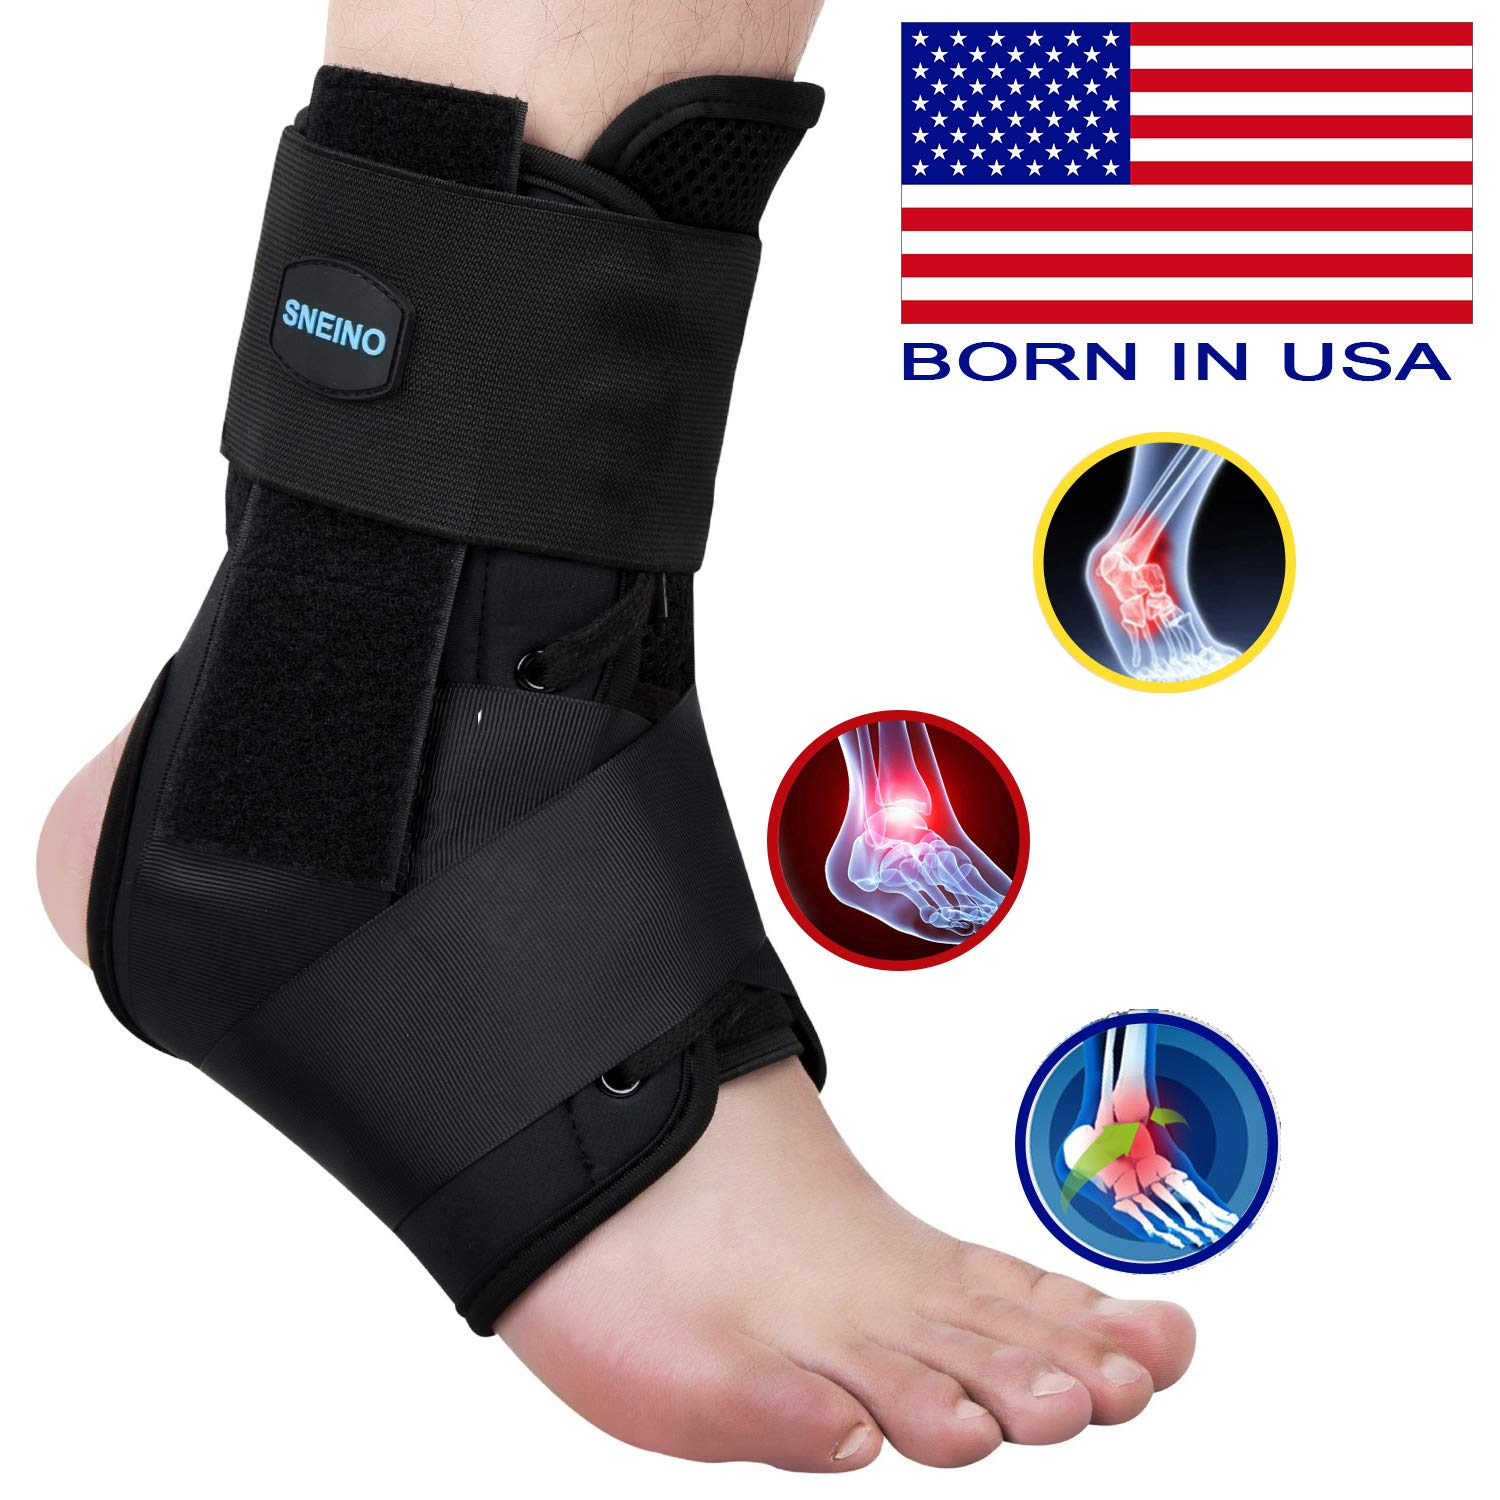 SNEINO Ankle Brace,Lace Up Ankle Brace for Women,Ankle Brace for Sprained Ankle,Ankle Supports for Women,Kids,Ankle Braces for Basketball,Volleyball Ankle Braces,Ankle Stabilizer for Women(Medium)